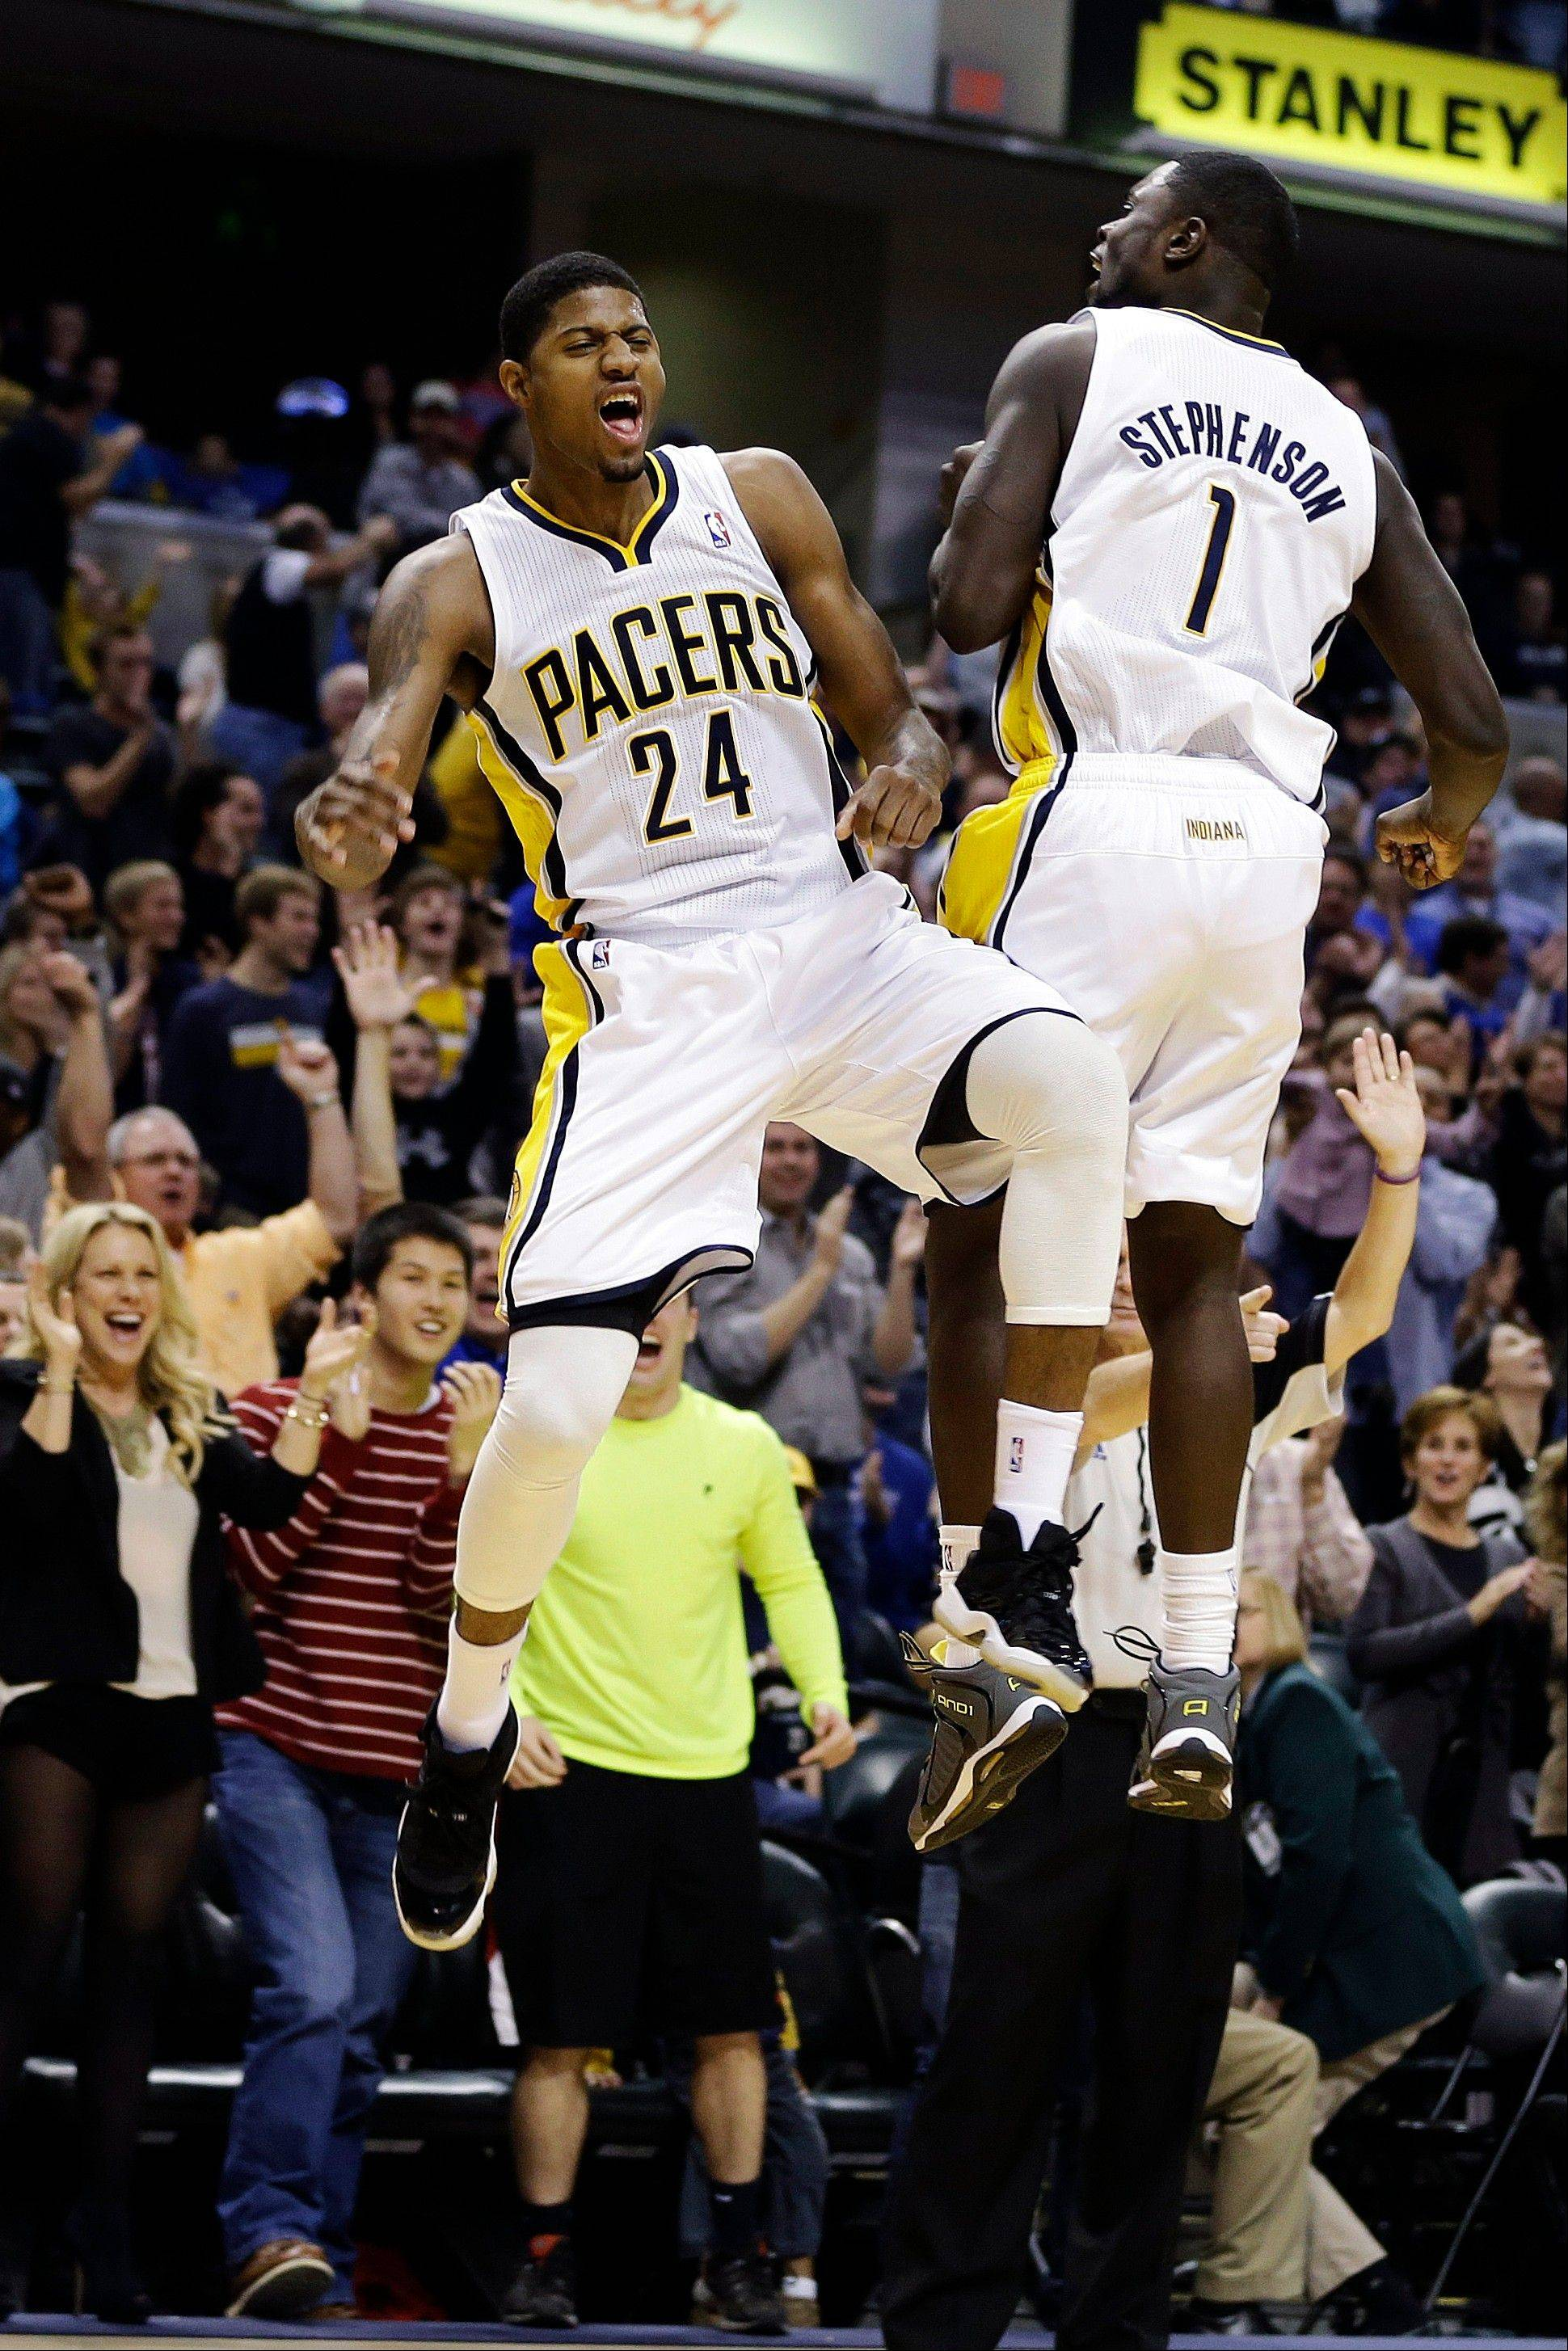 The Pacers' Paul George (24) and Lance Stephenson celebrate after George hit a 3-pointer during the second half Wednesday at home against New Orleans.